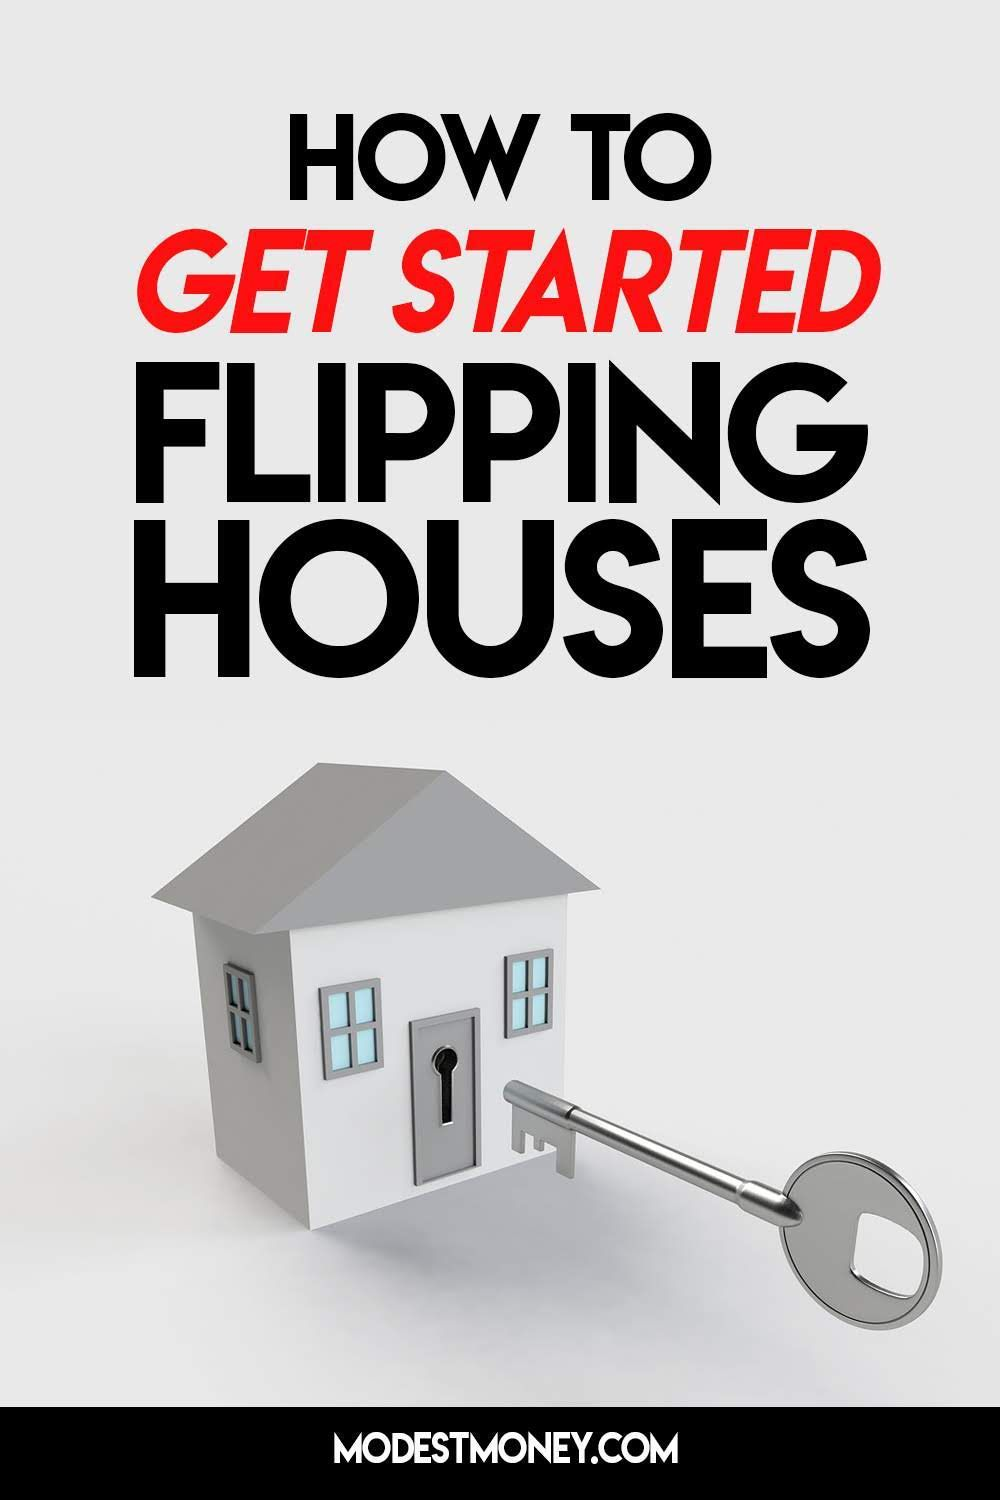 How to get started flipping houses  #realestate #makemoney #makingmoney #renovation #homeimprovement . #flippinghouses